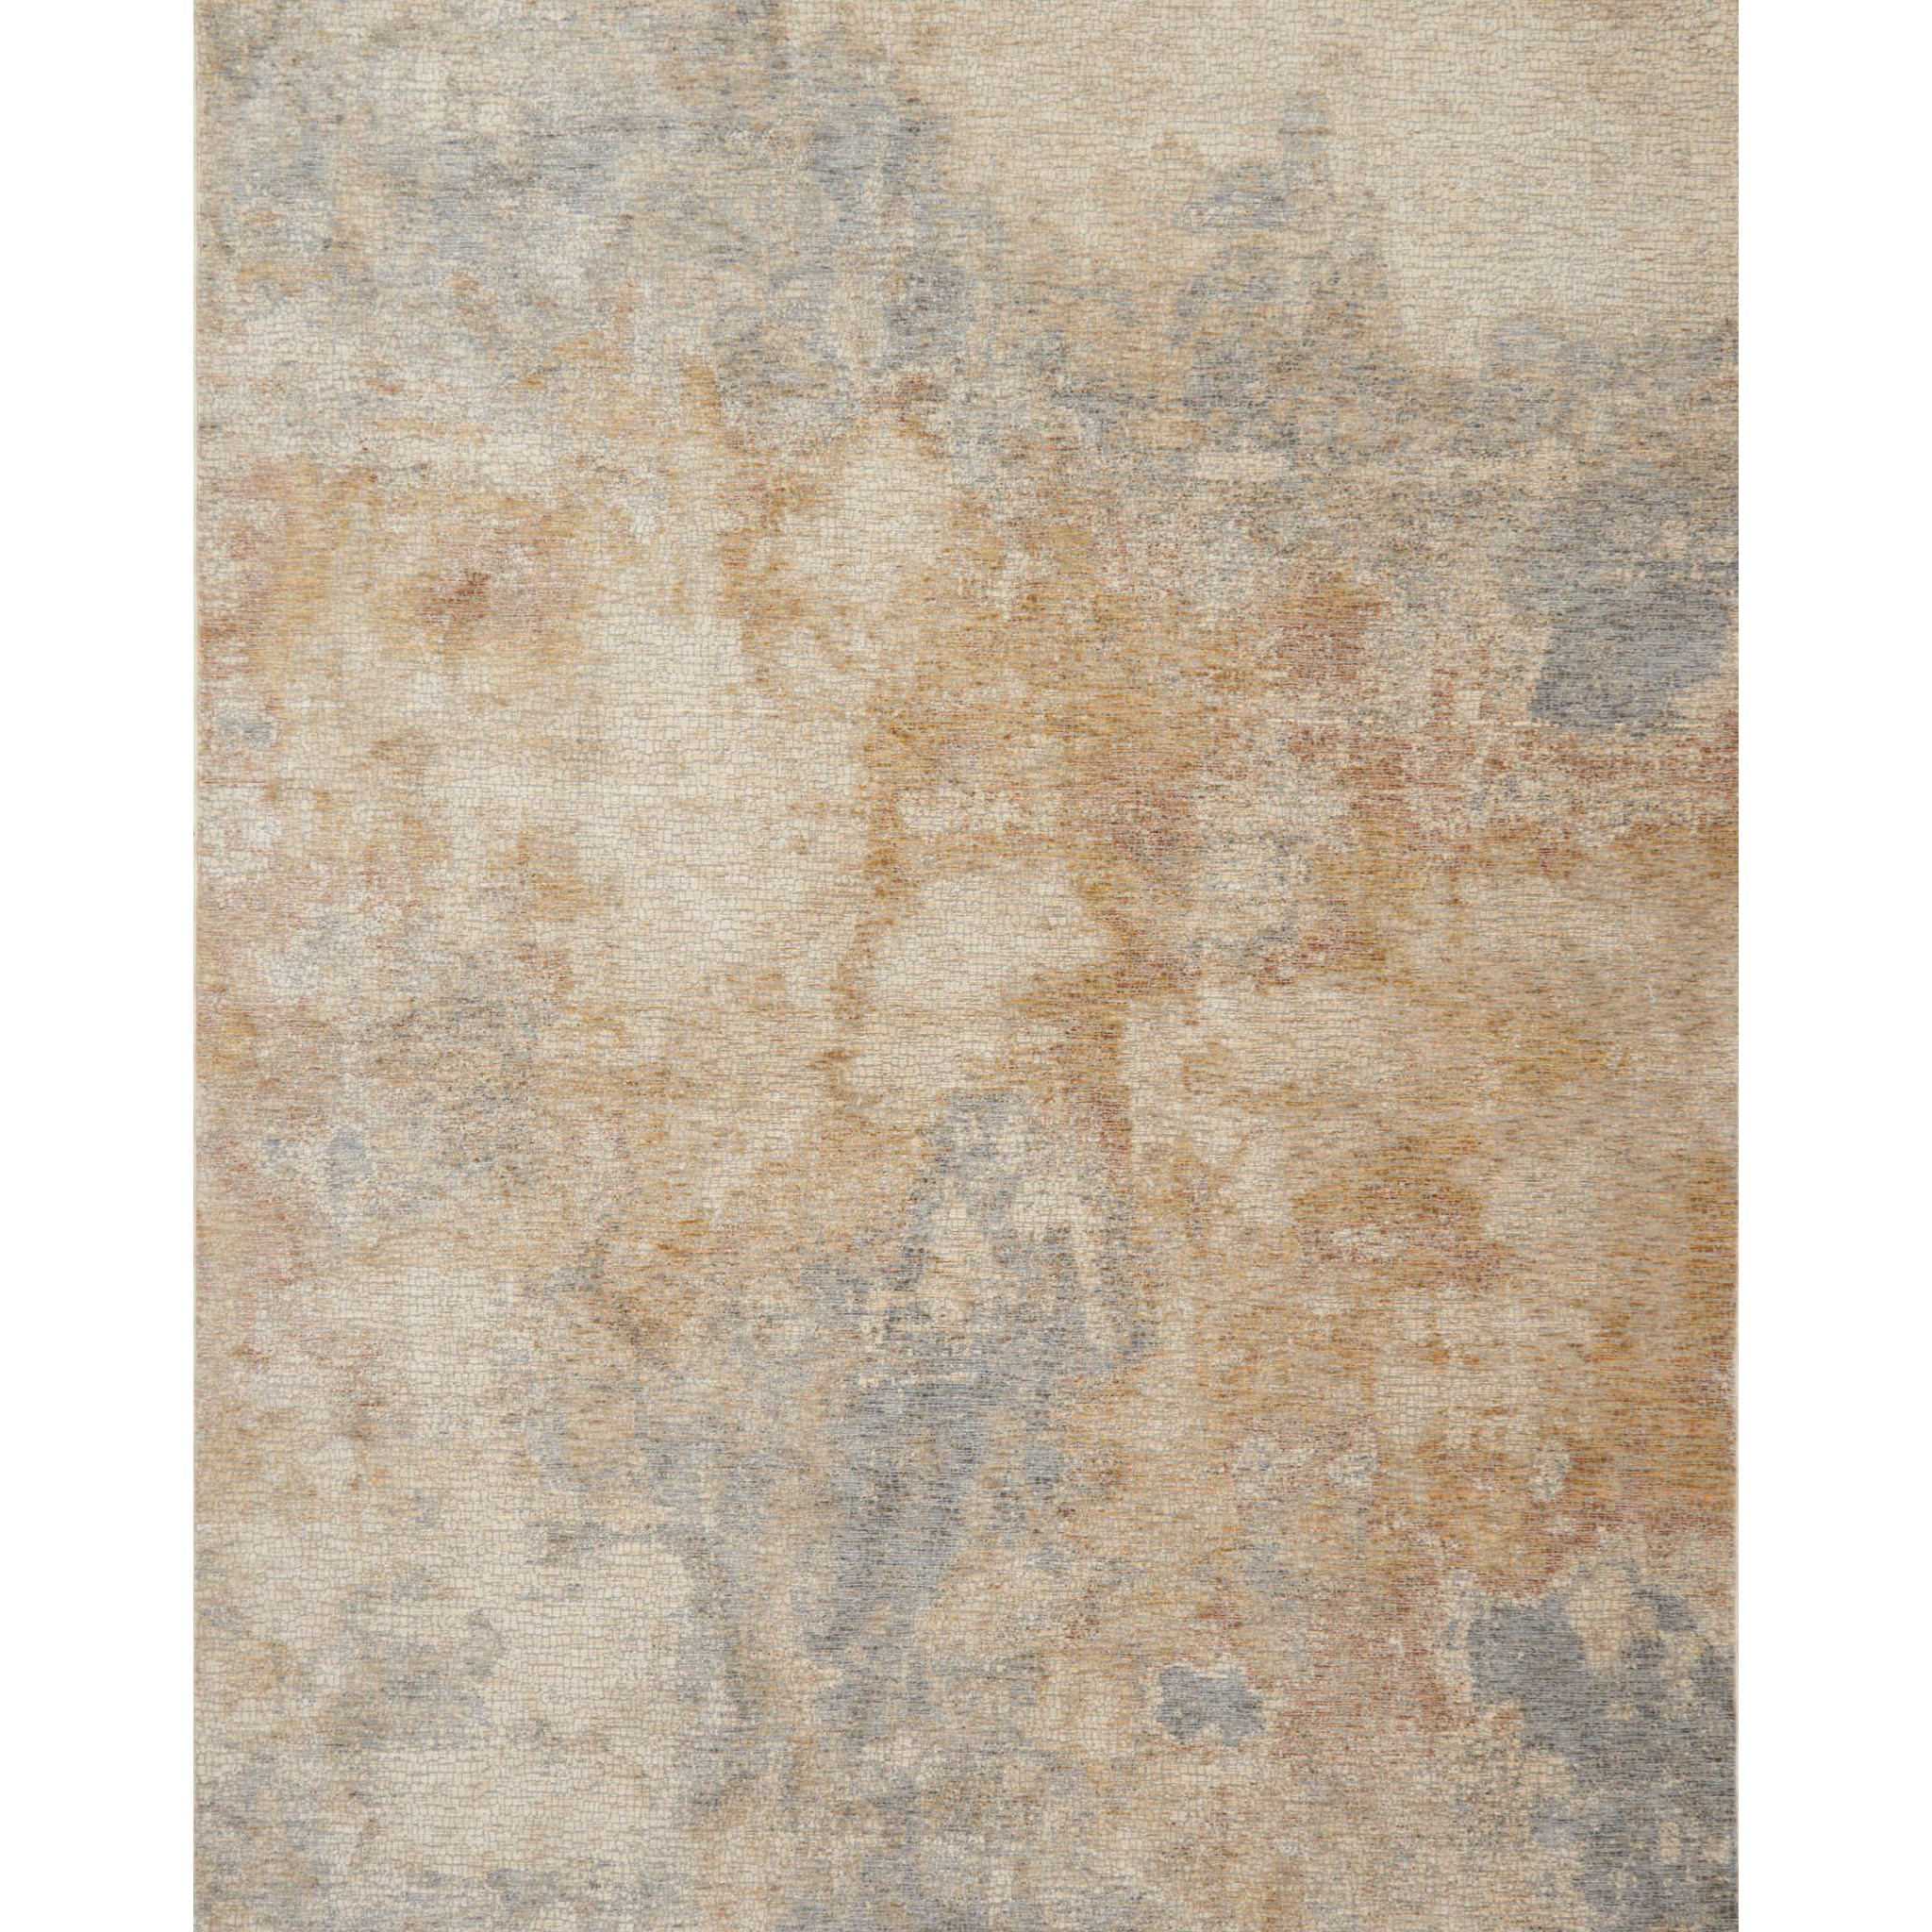 "Porcia 3'-7"" X 5'-2"" Area Rug by Loloi Rugs at Sprintz Furniture"